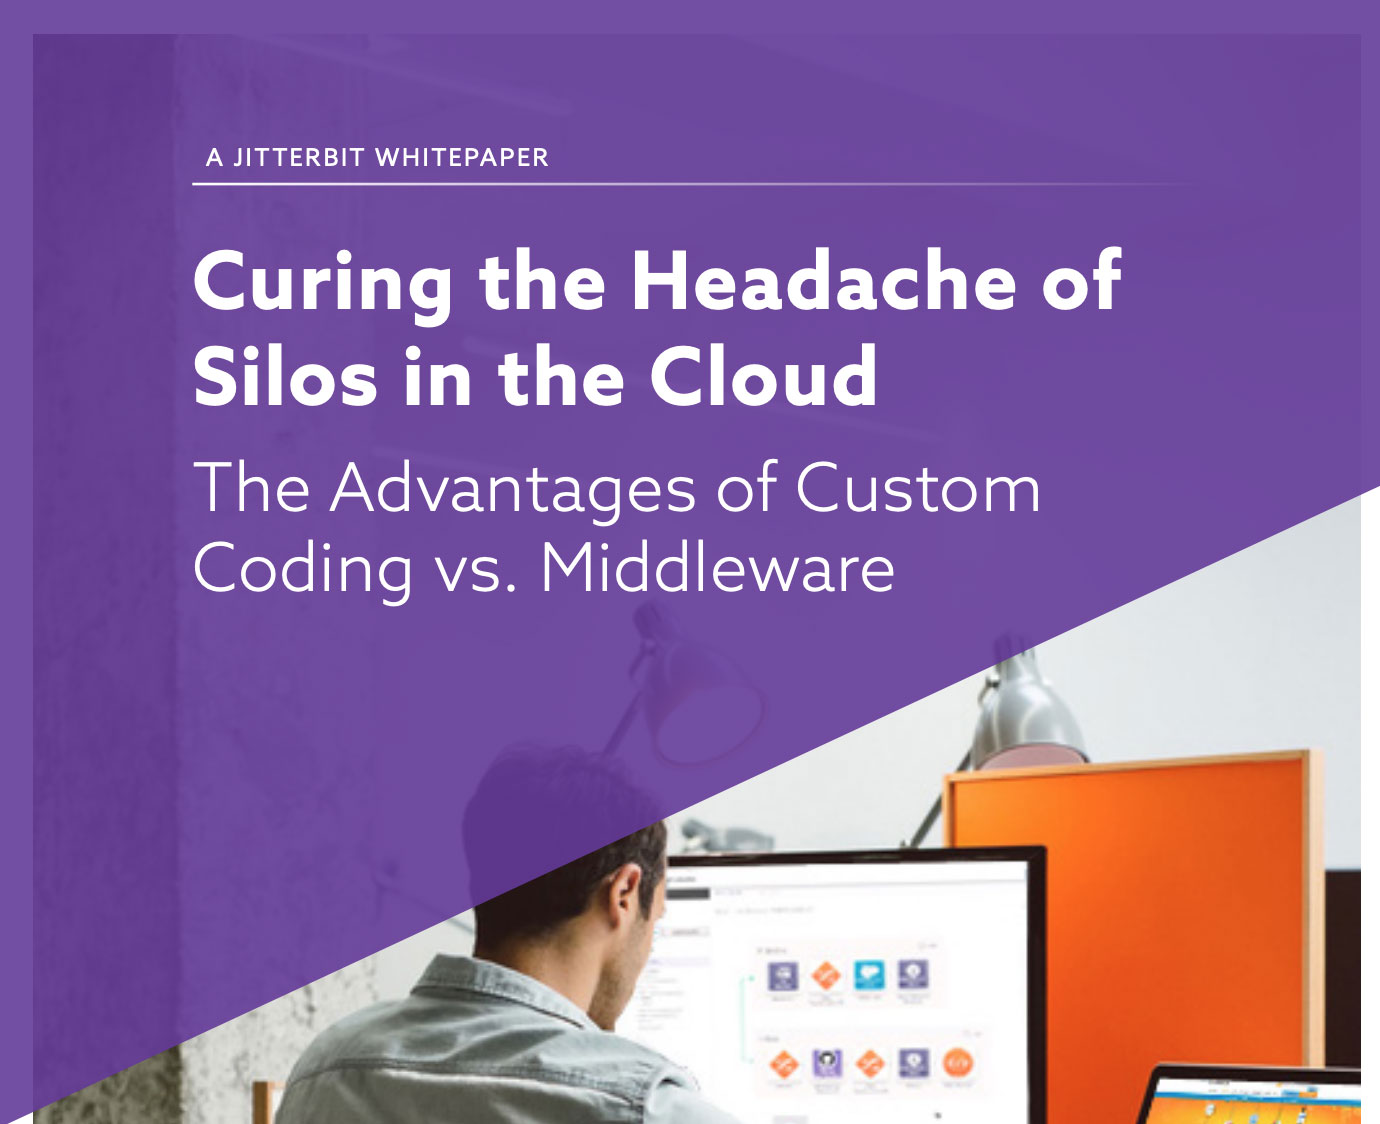 Jitterbit White Paper on Data siloes in the cloud